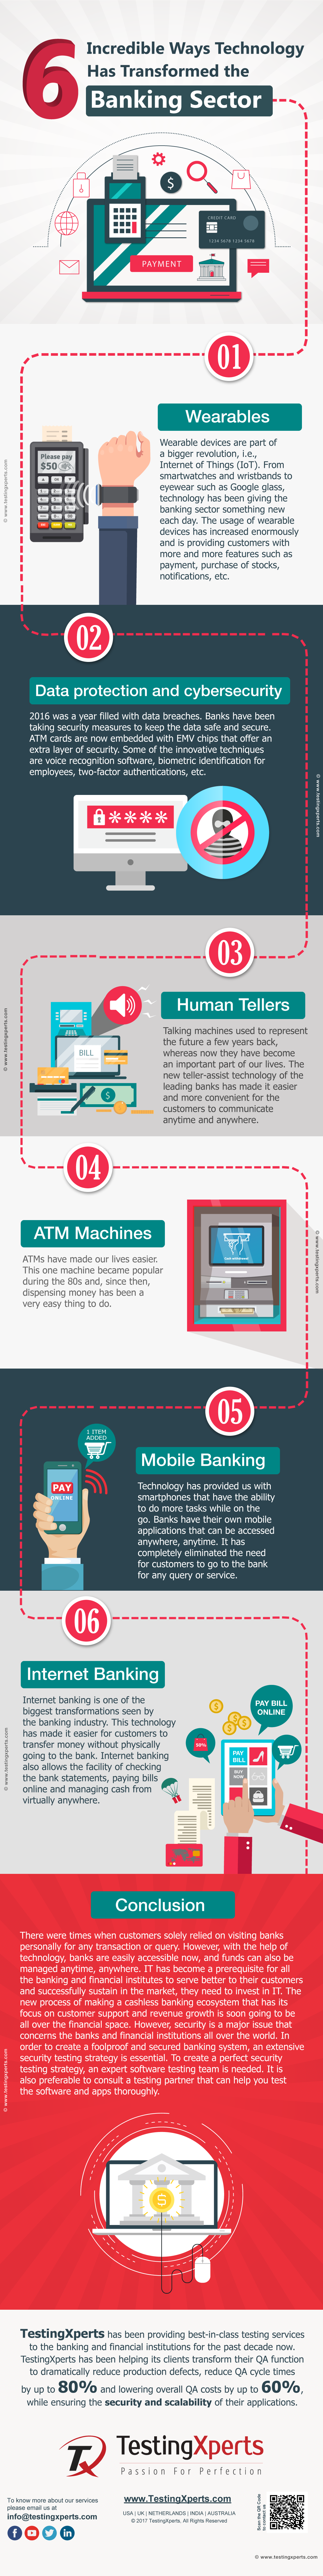 Infographic - Technology and Software testing Has Transformed the Banking Sector